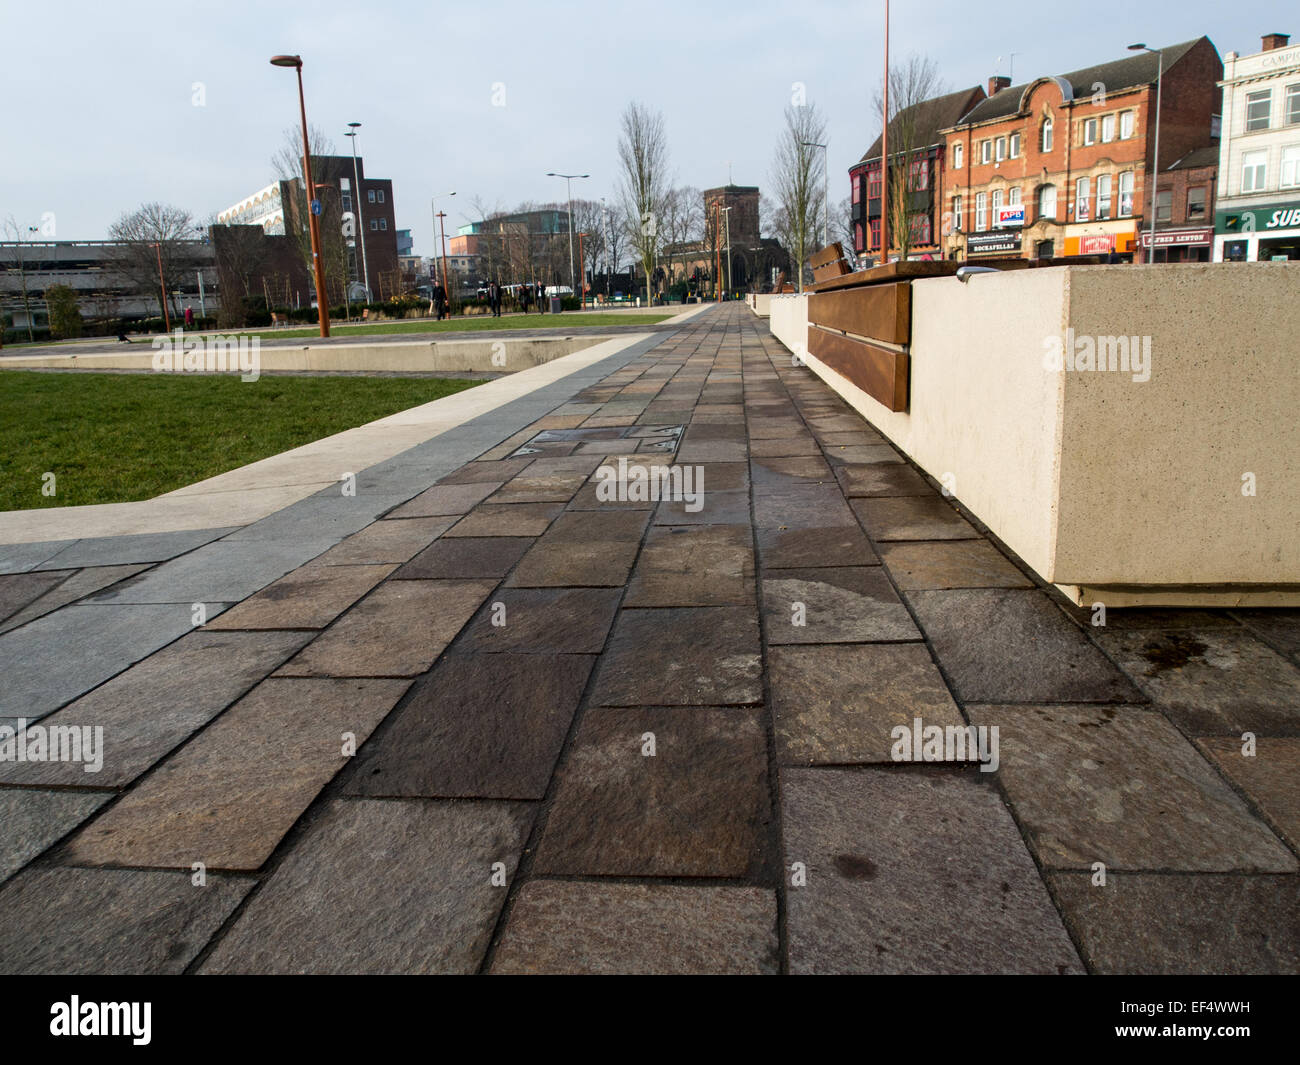 Street Furniture: Wood seating fixed onto concrete plinths in Jubilee Square, Highcross, Leicester. - Stock Image